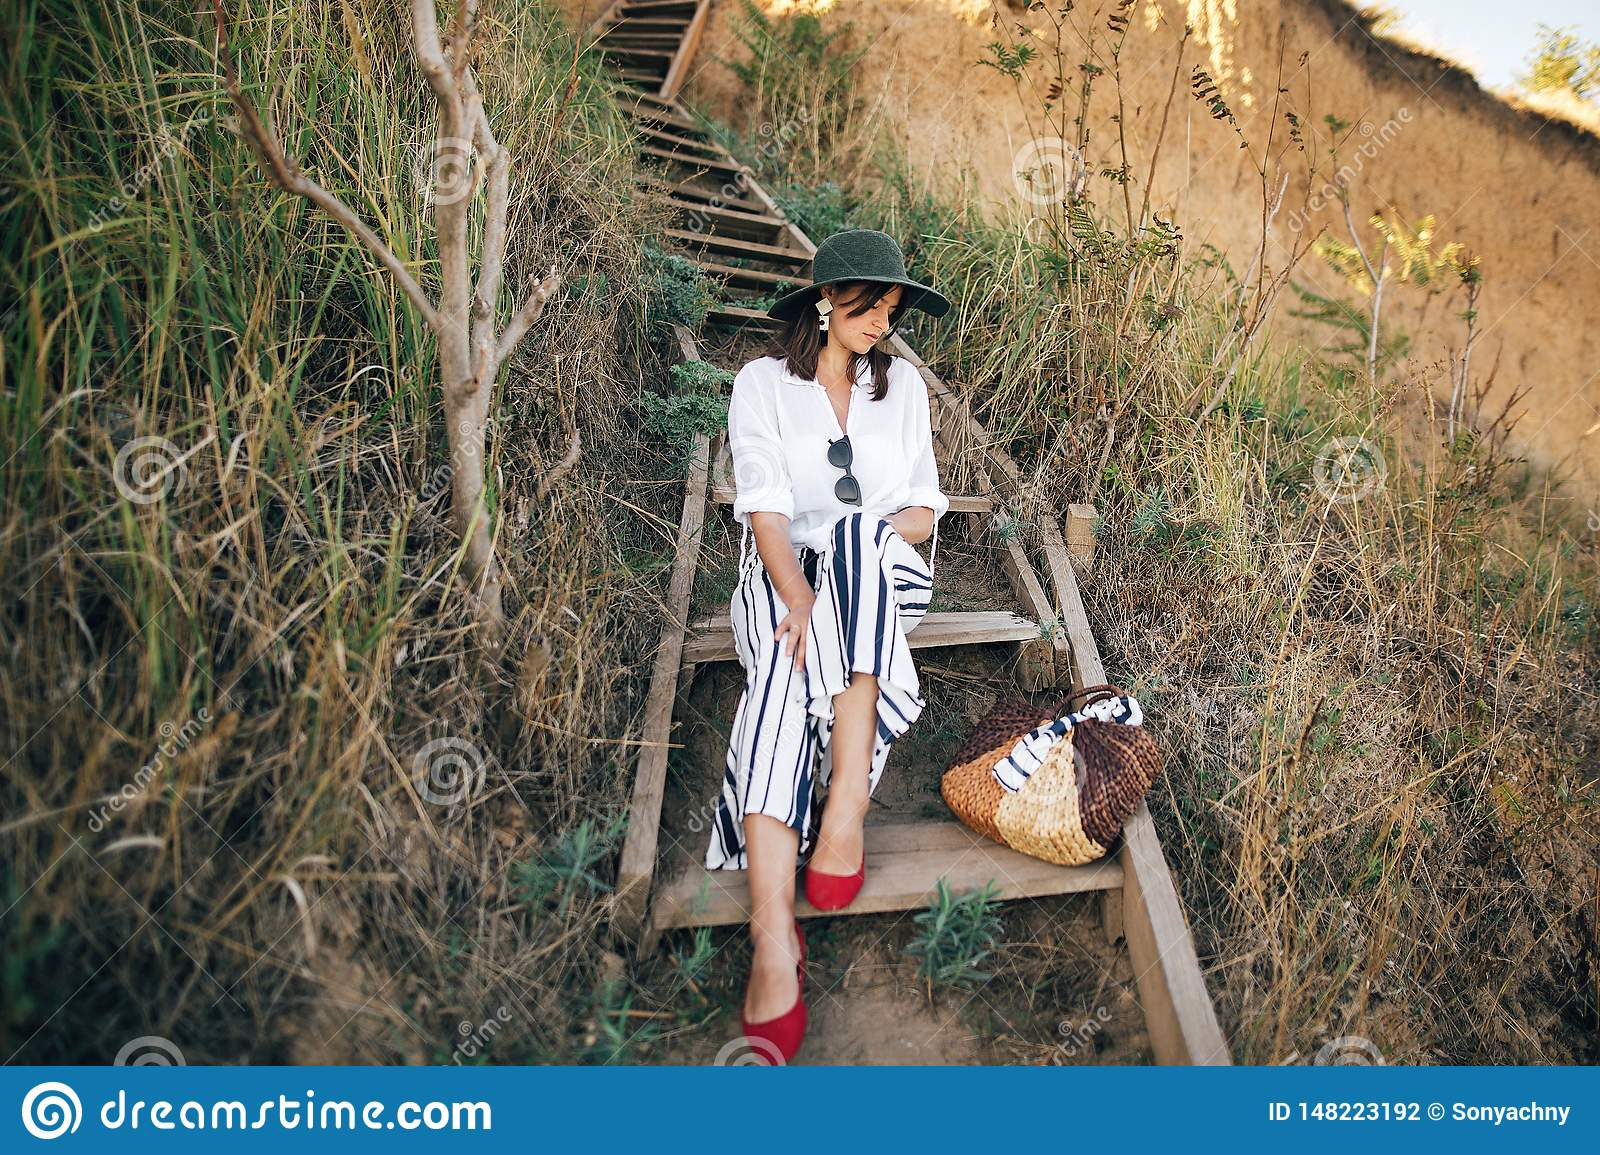 Portrait of happy young fashionable woman relaxing on tropical island. Stylish boho girl in hat sitting on wooden stairs at sandy